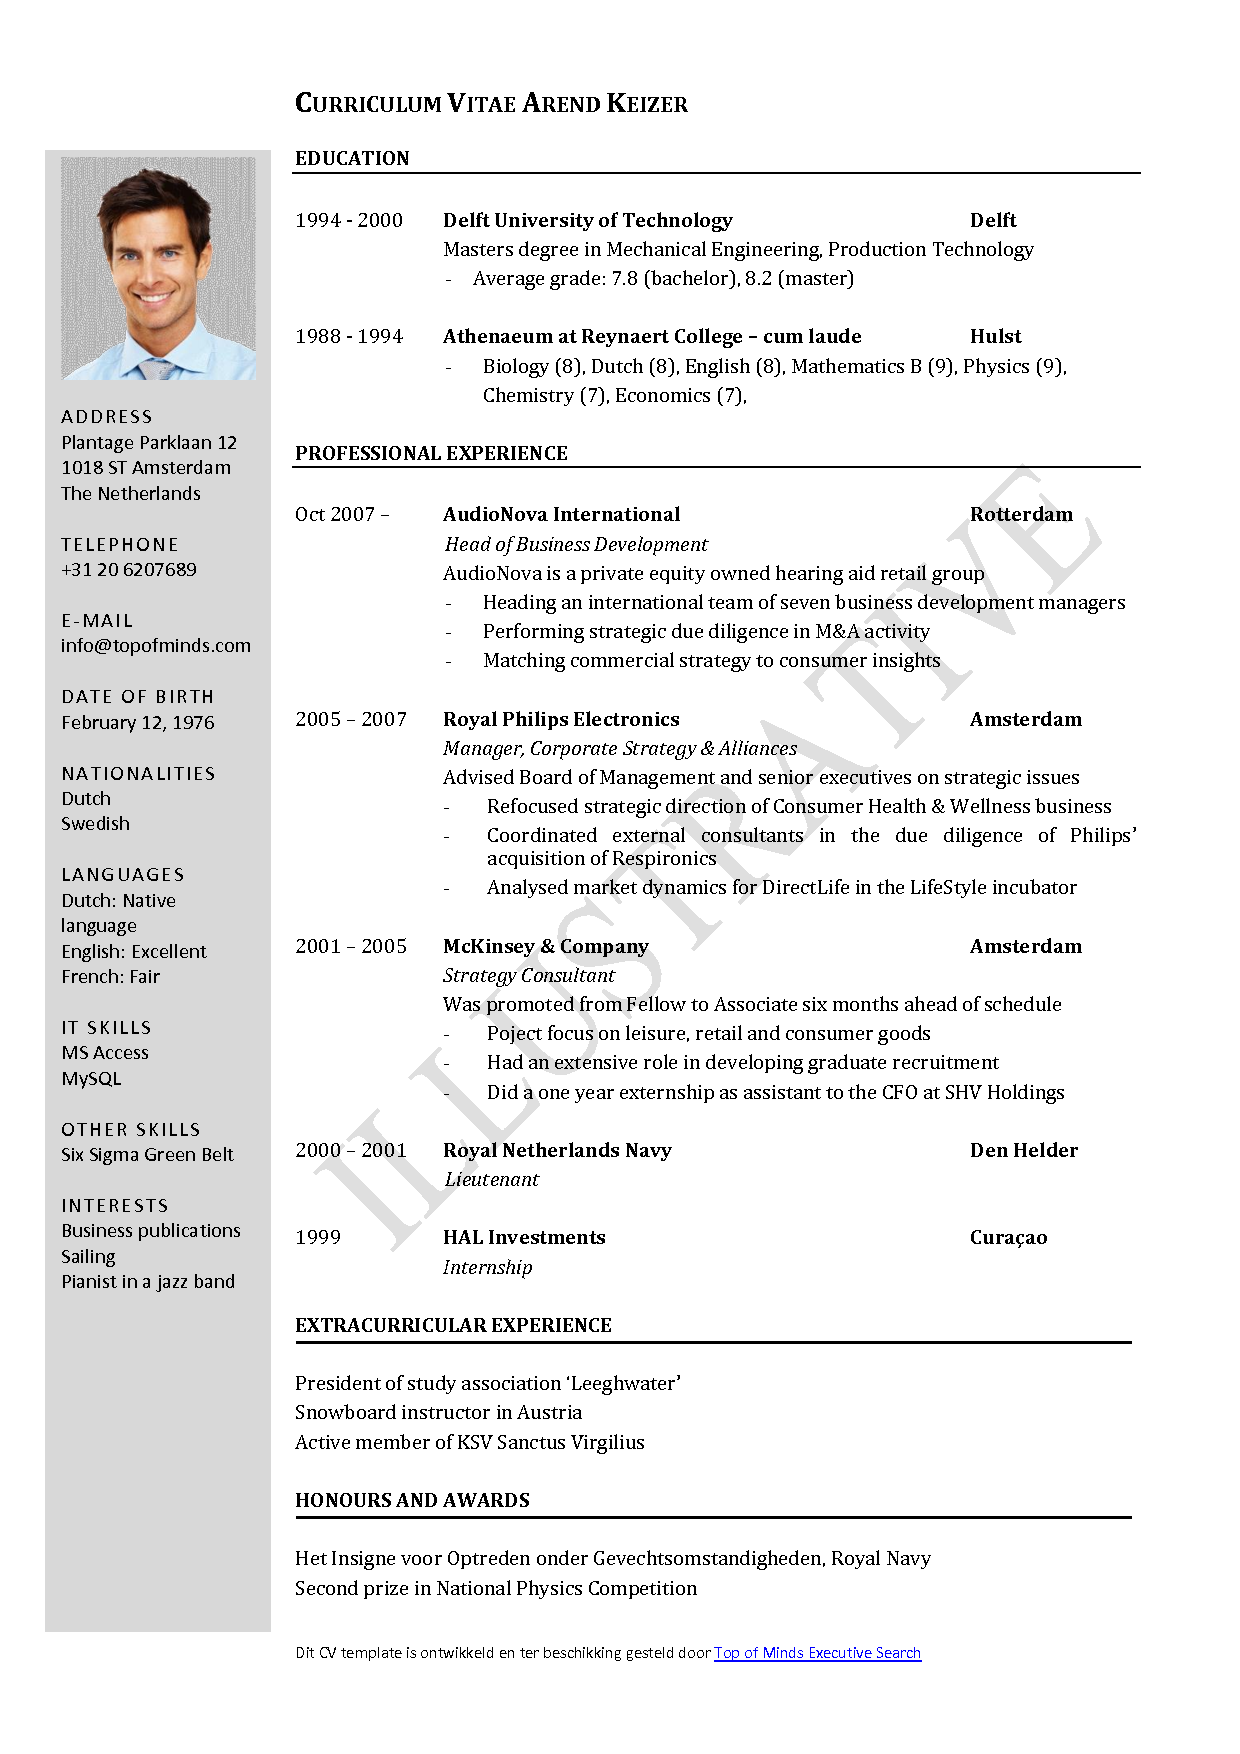 Free curriculum vitae template word download cv template tng free curriculum vitae template word download cv template yelopaper Image collections